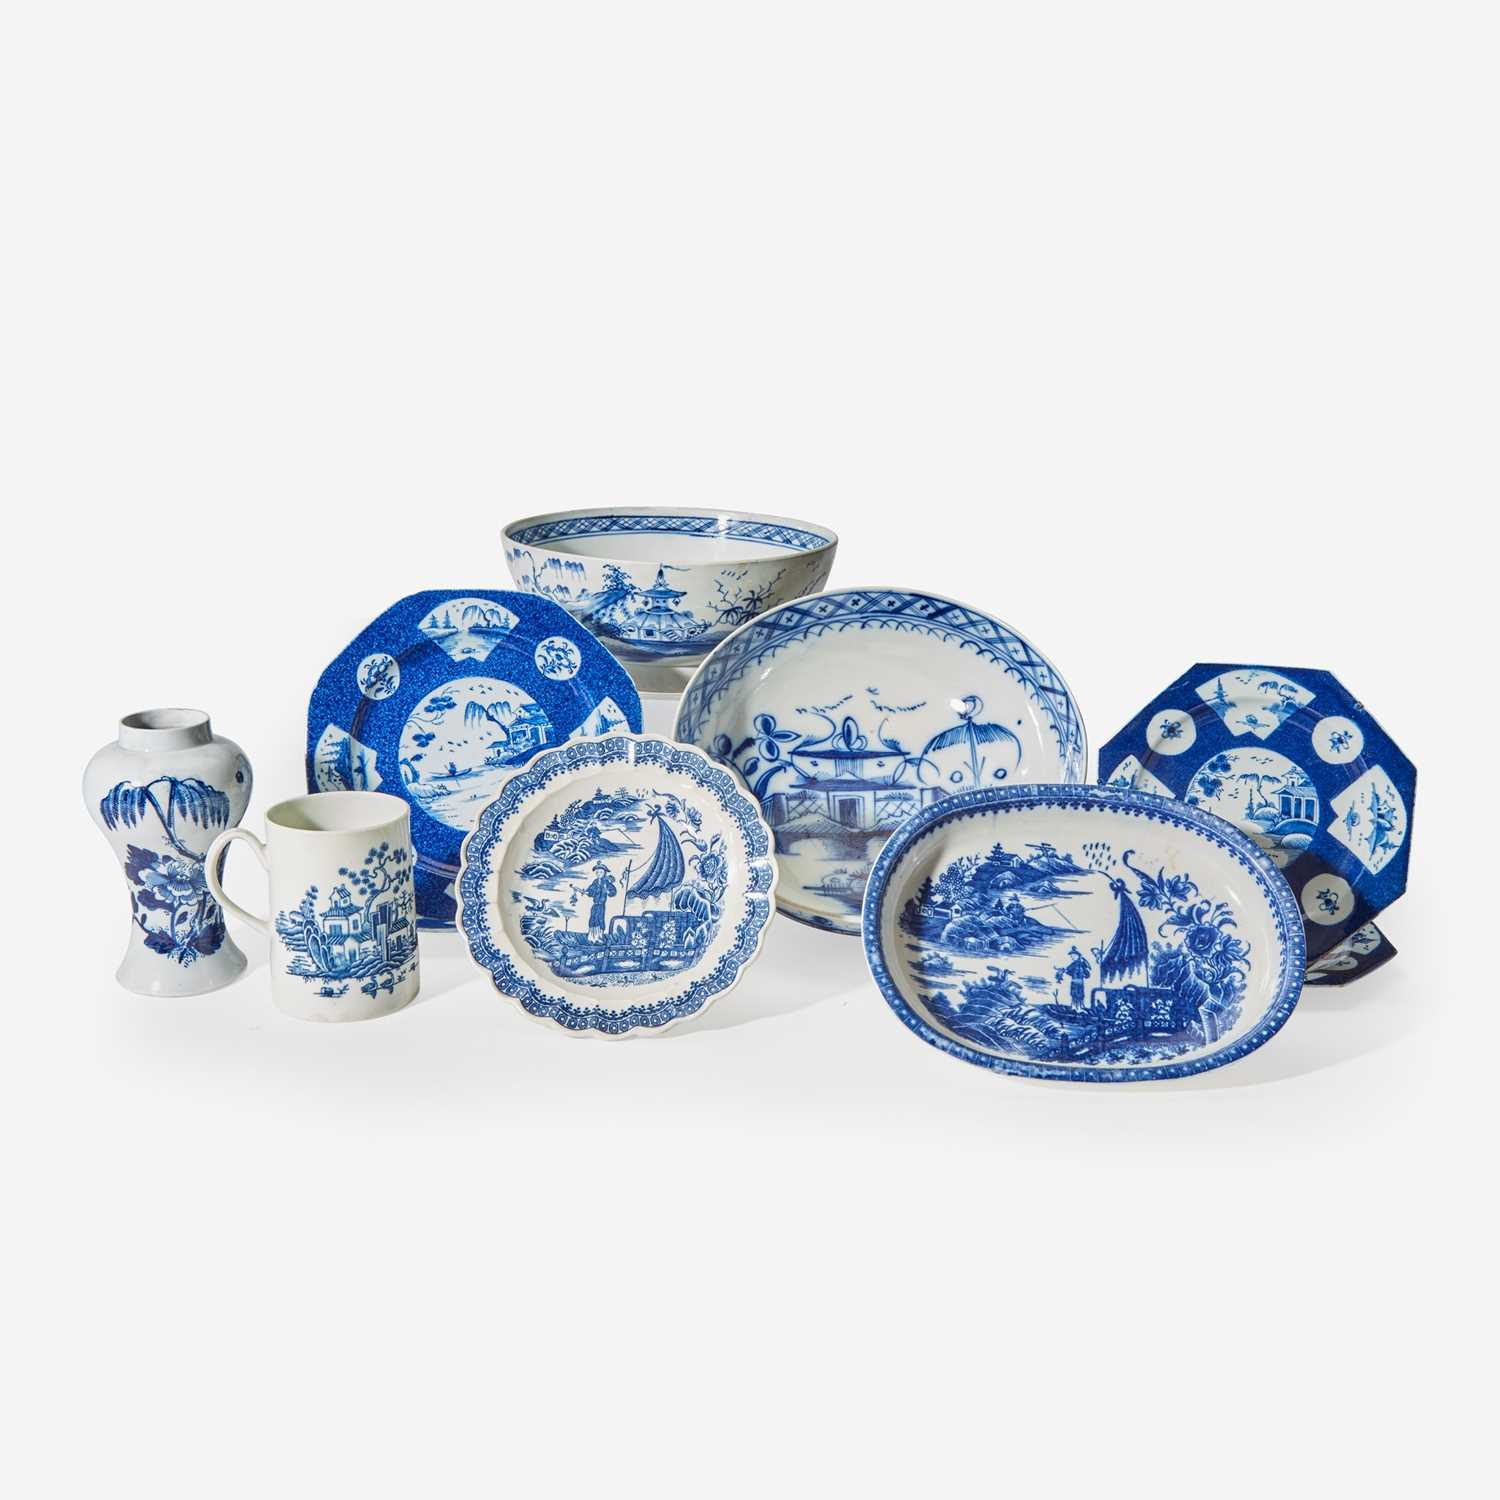 Lot 80 - A group of ten English soft paste porcelain blue and white tablewares